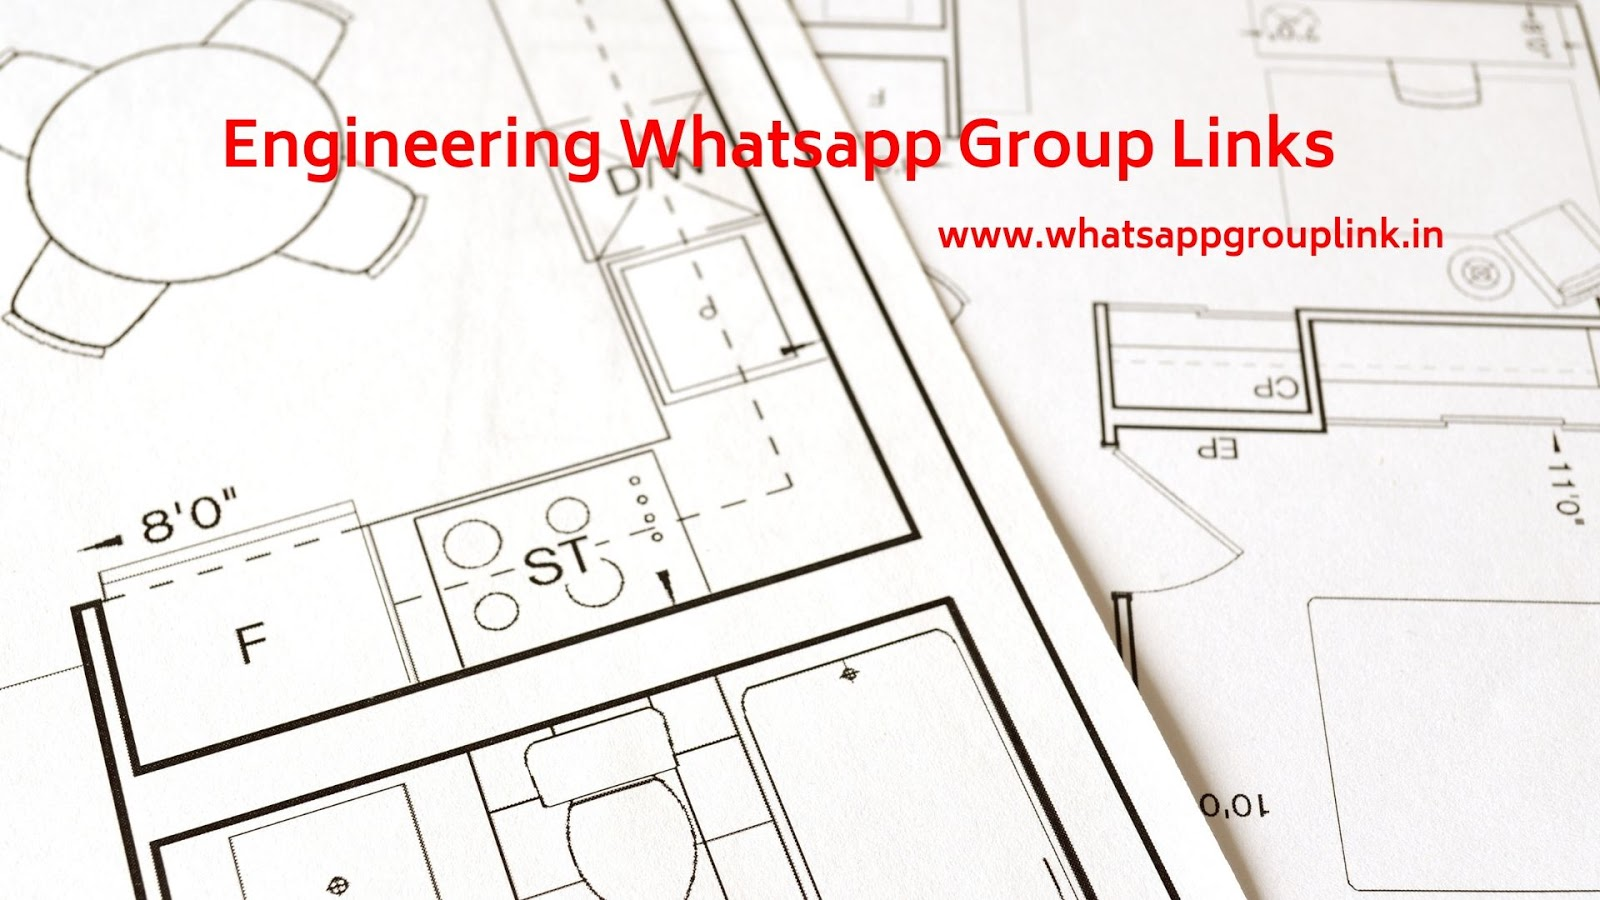 Whatsapp Group Link: Engineering Whatsapp Group Links